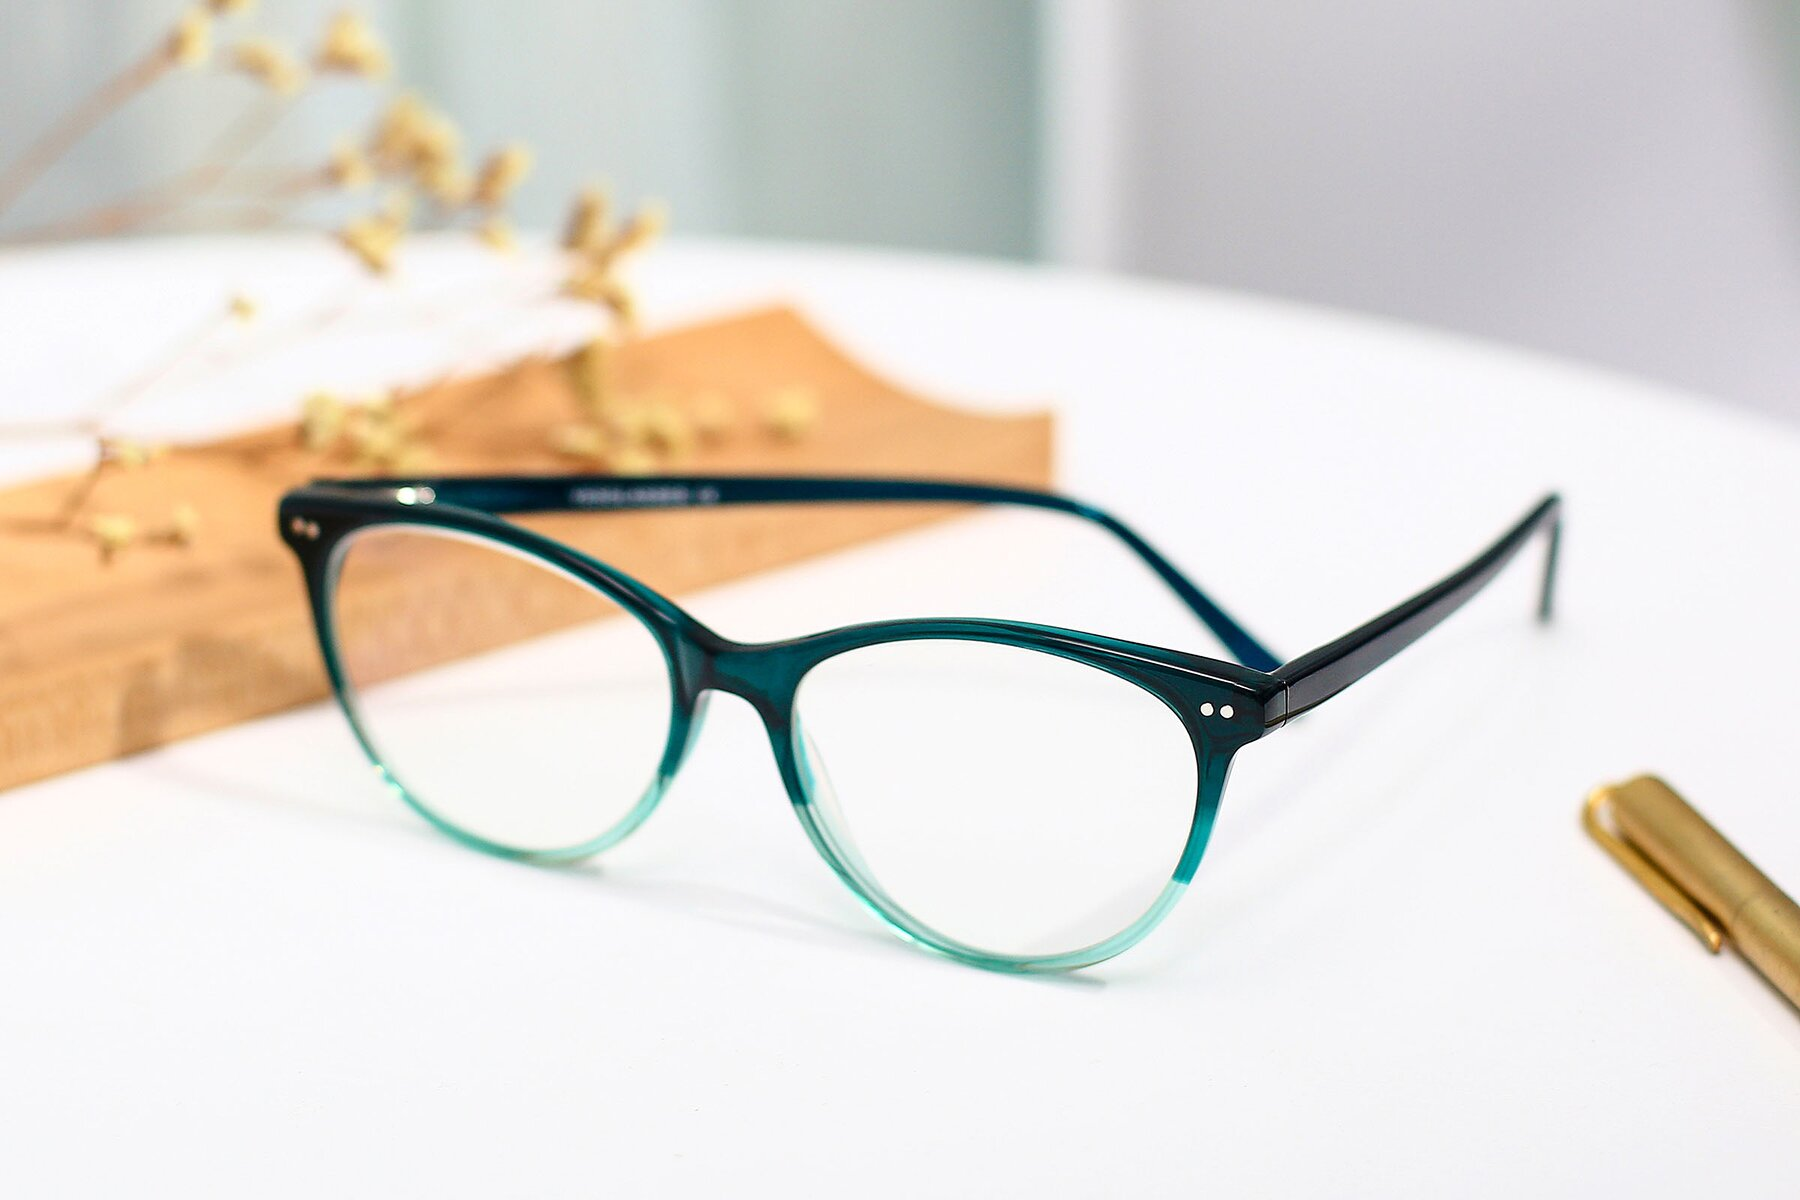 Women's lifestyle photography #2 of SR6050 in Transparent Gradient Green with Clear Eyeglass Lenses